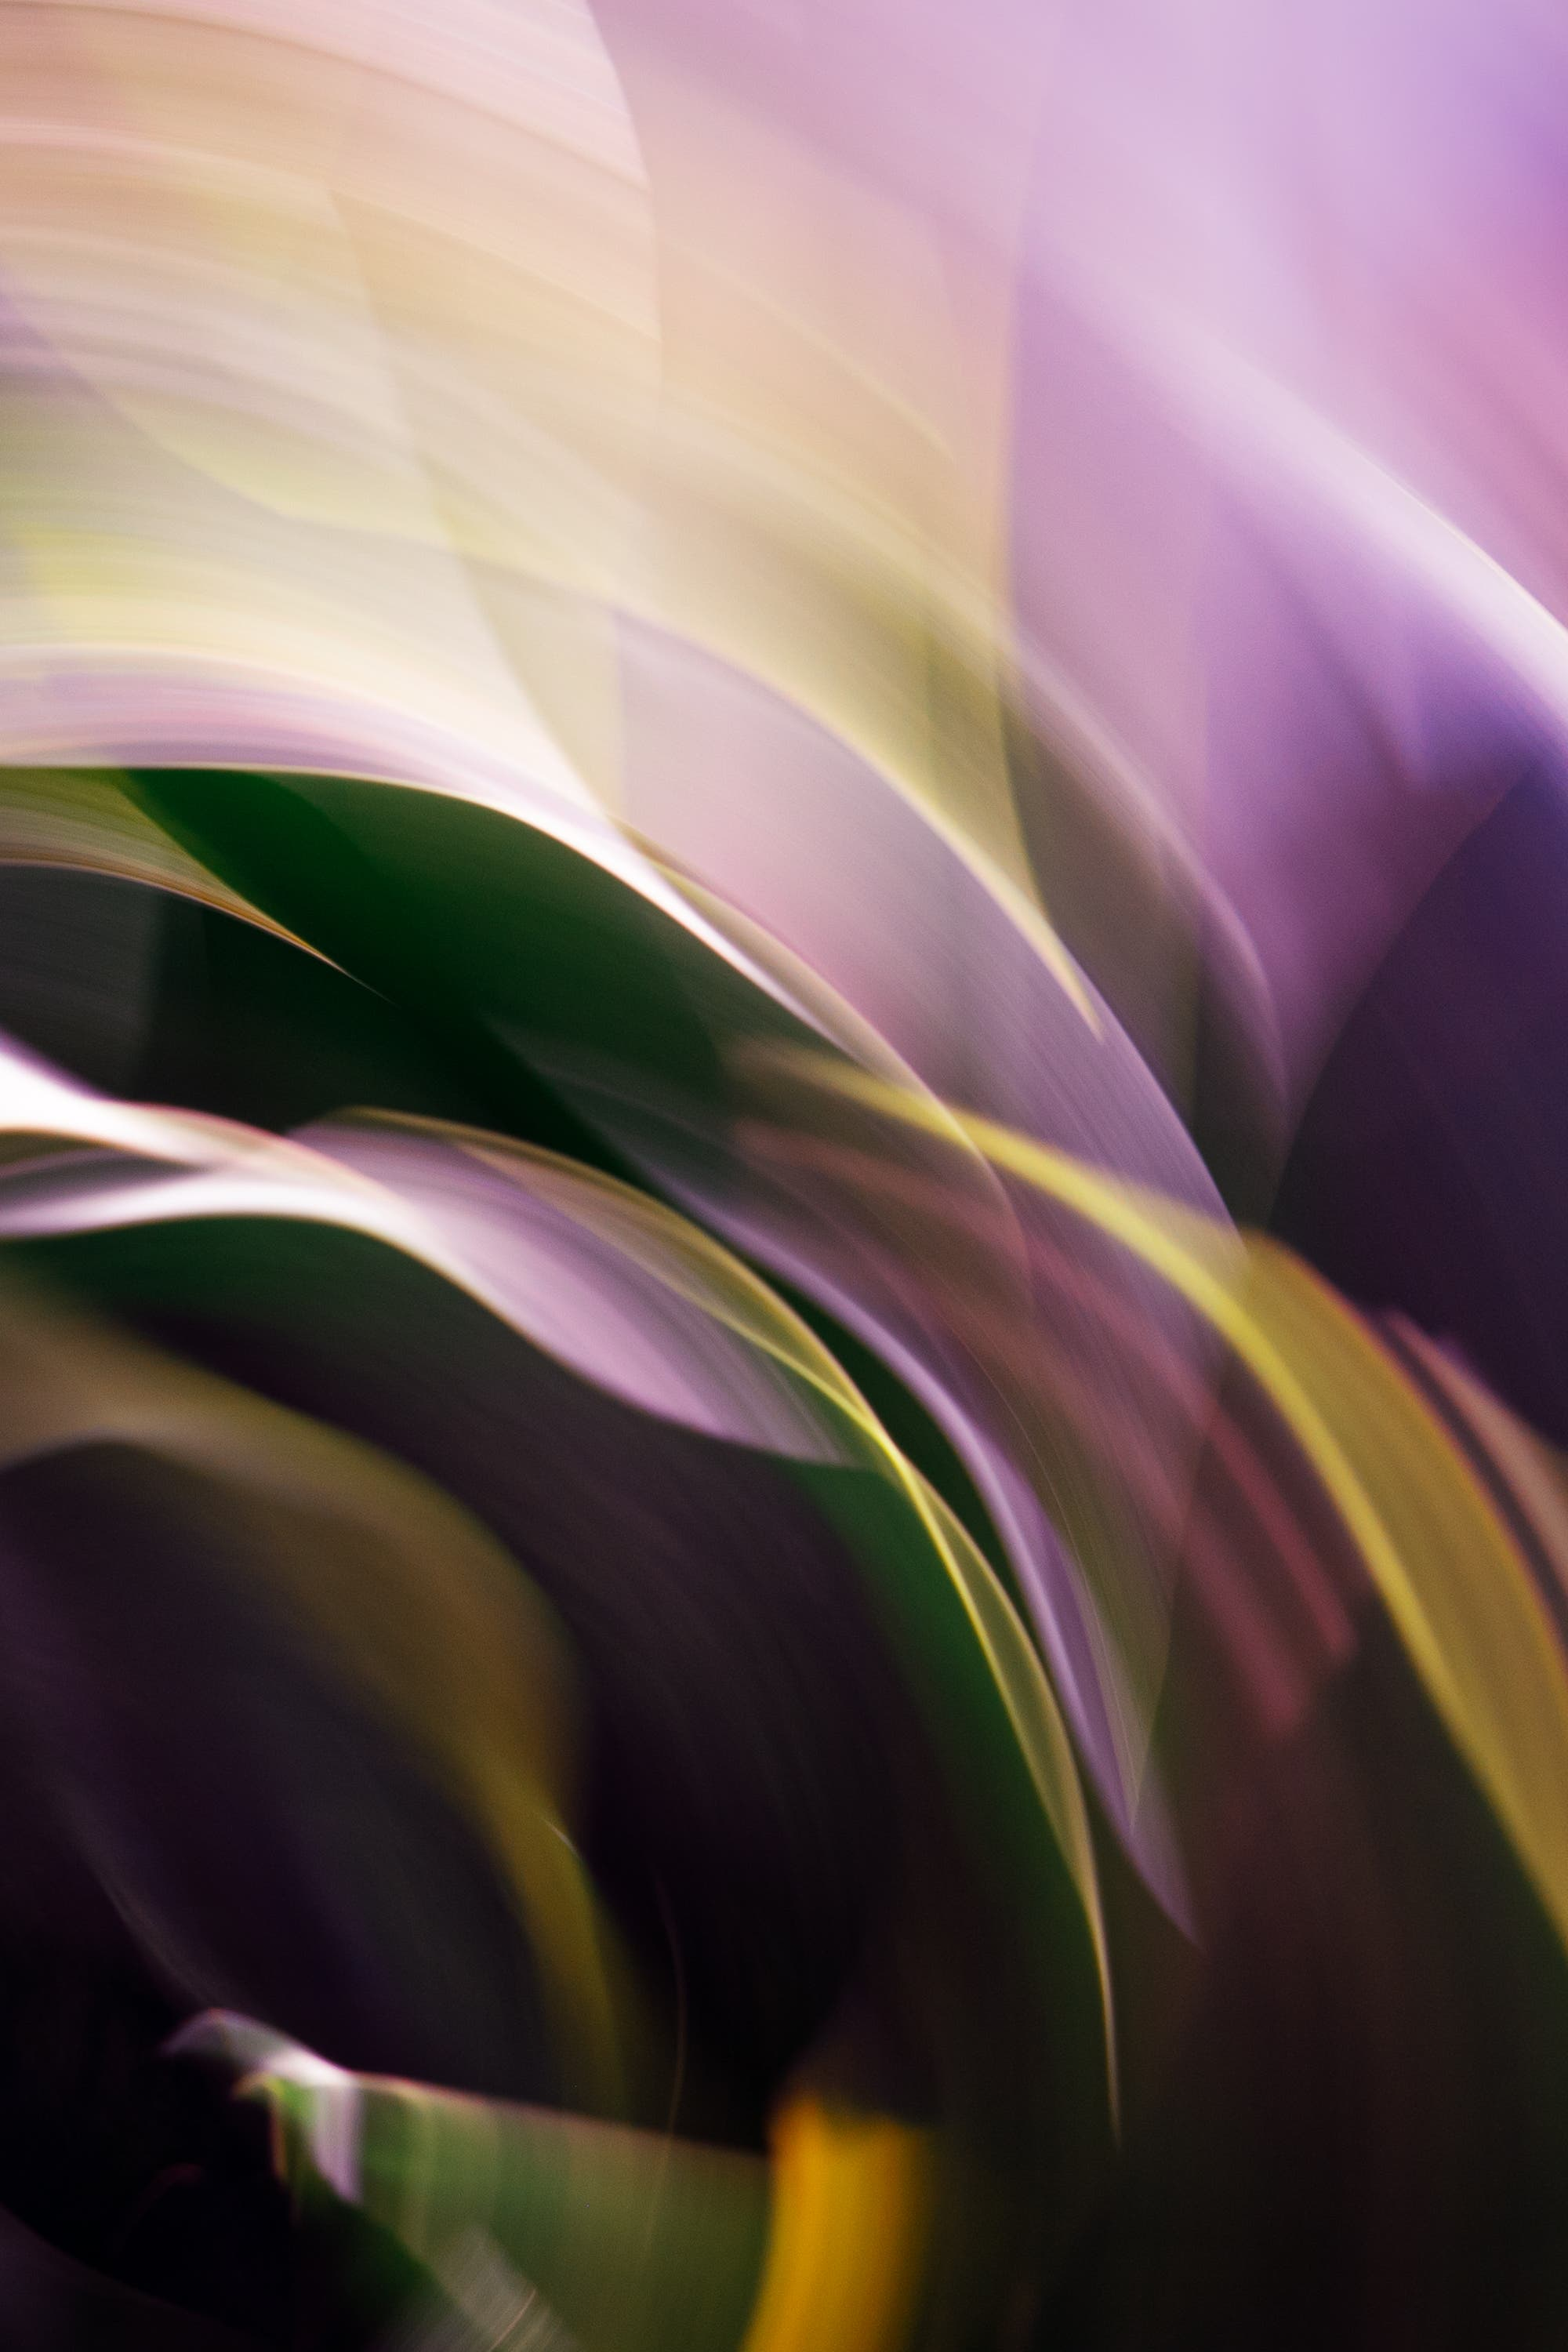 Jayna Ho Does Beautiful Abstract Photography Without Photoshop